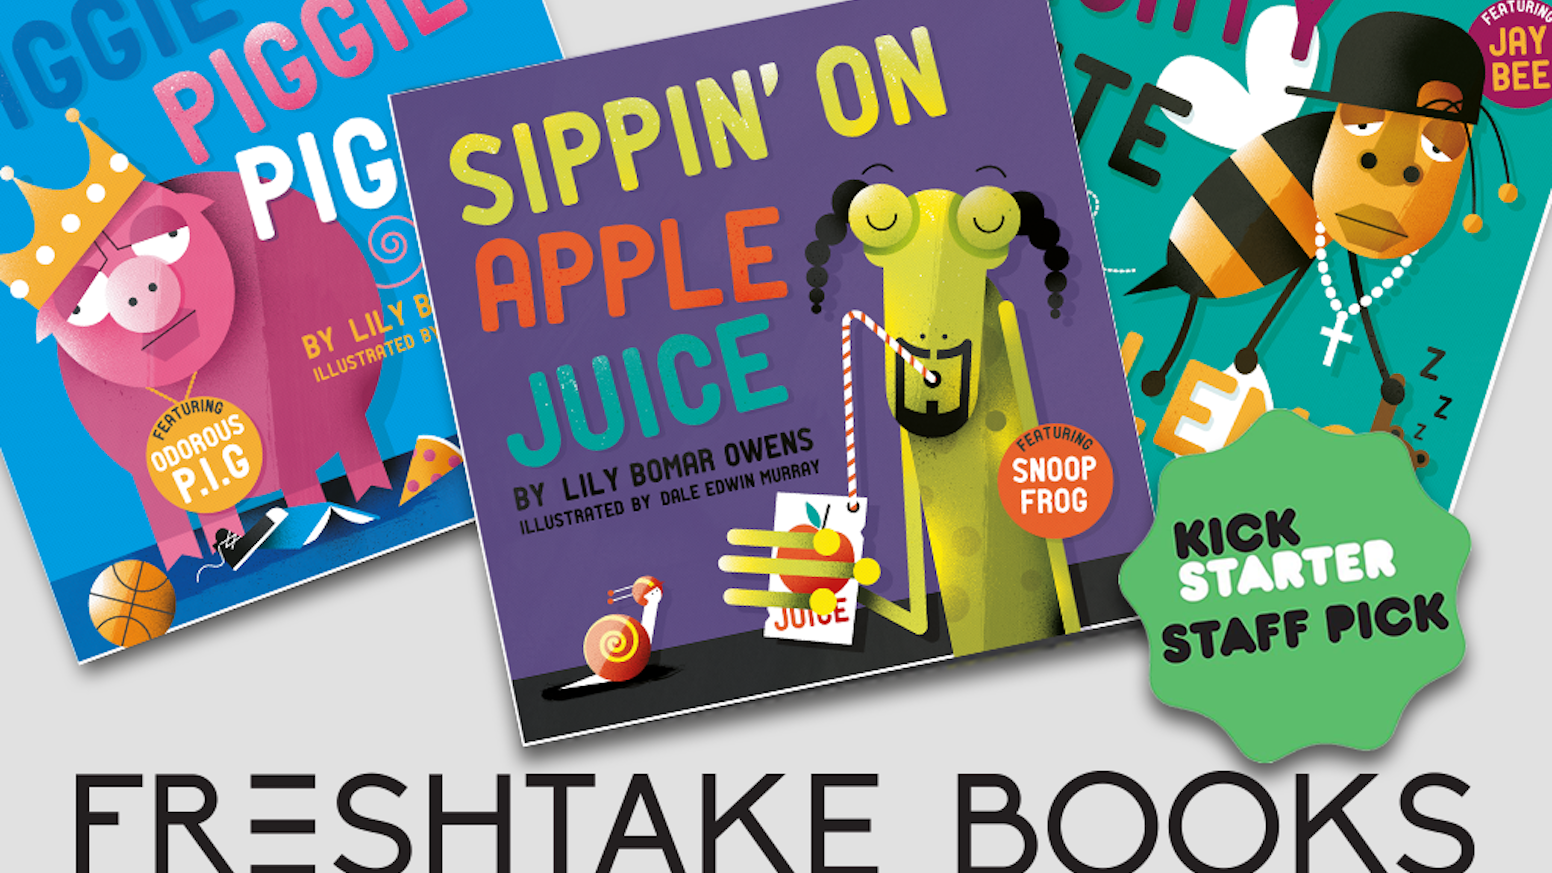 Your favorite rap songs re-imagined as kid-friendly board books. Introduce your babes to Snoop Frog, Piggie Smalls, and Jay Bee.